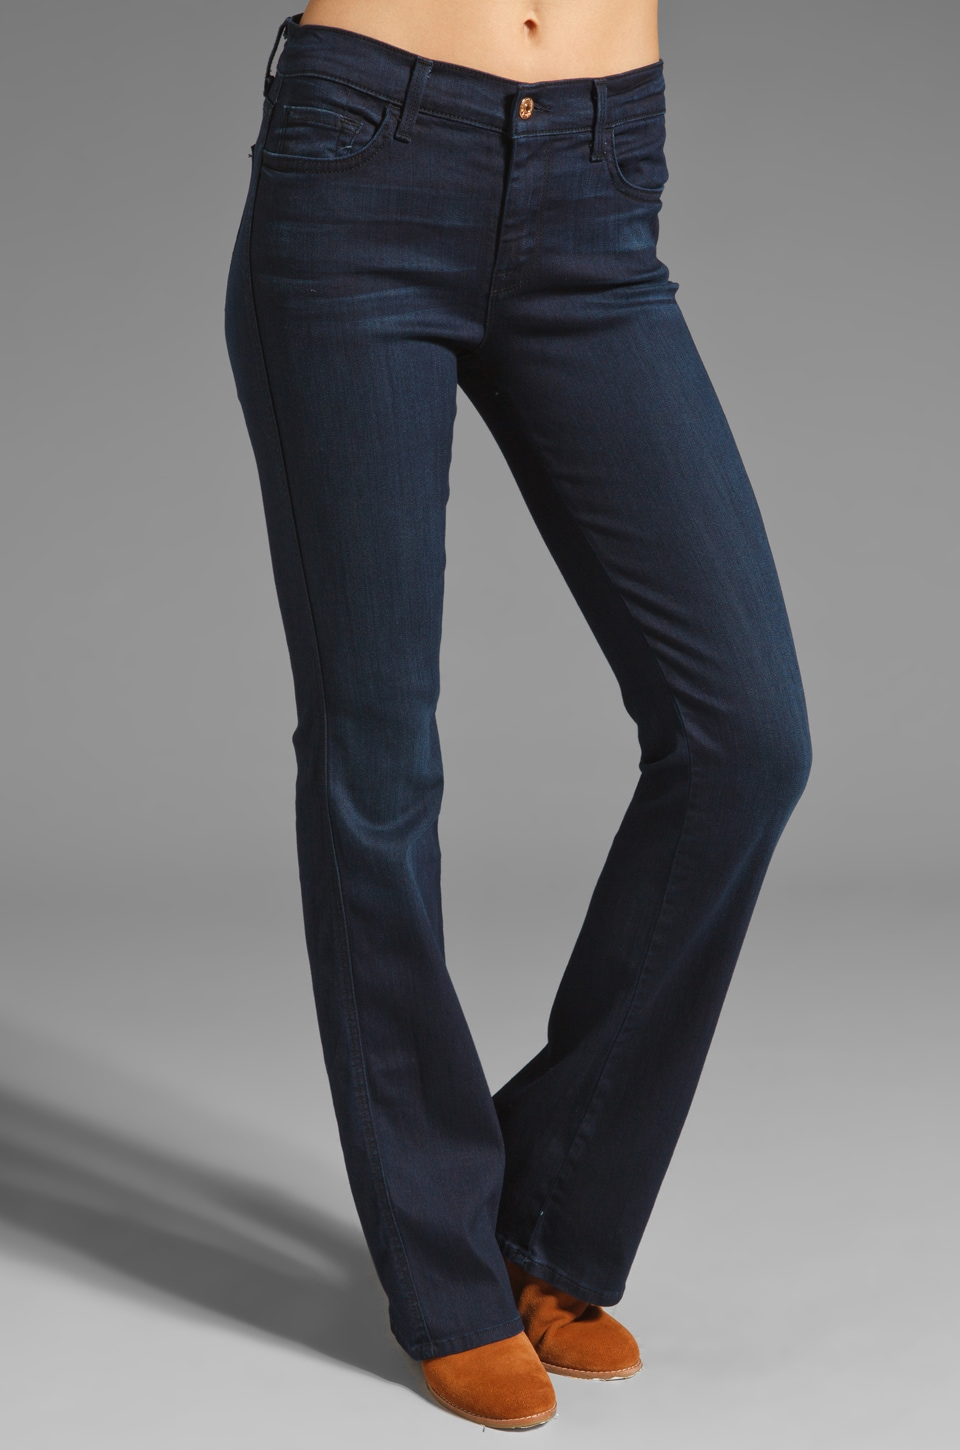 7 For All Mankind Bootcut with Stardust in Dusk Night Sky